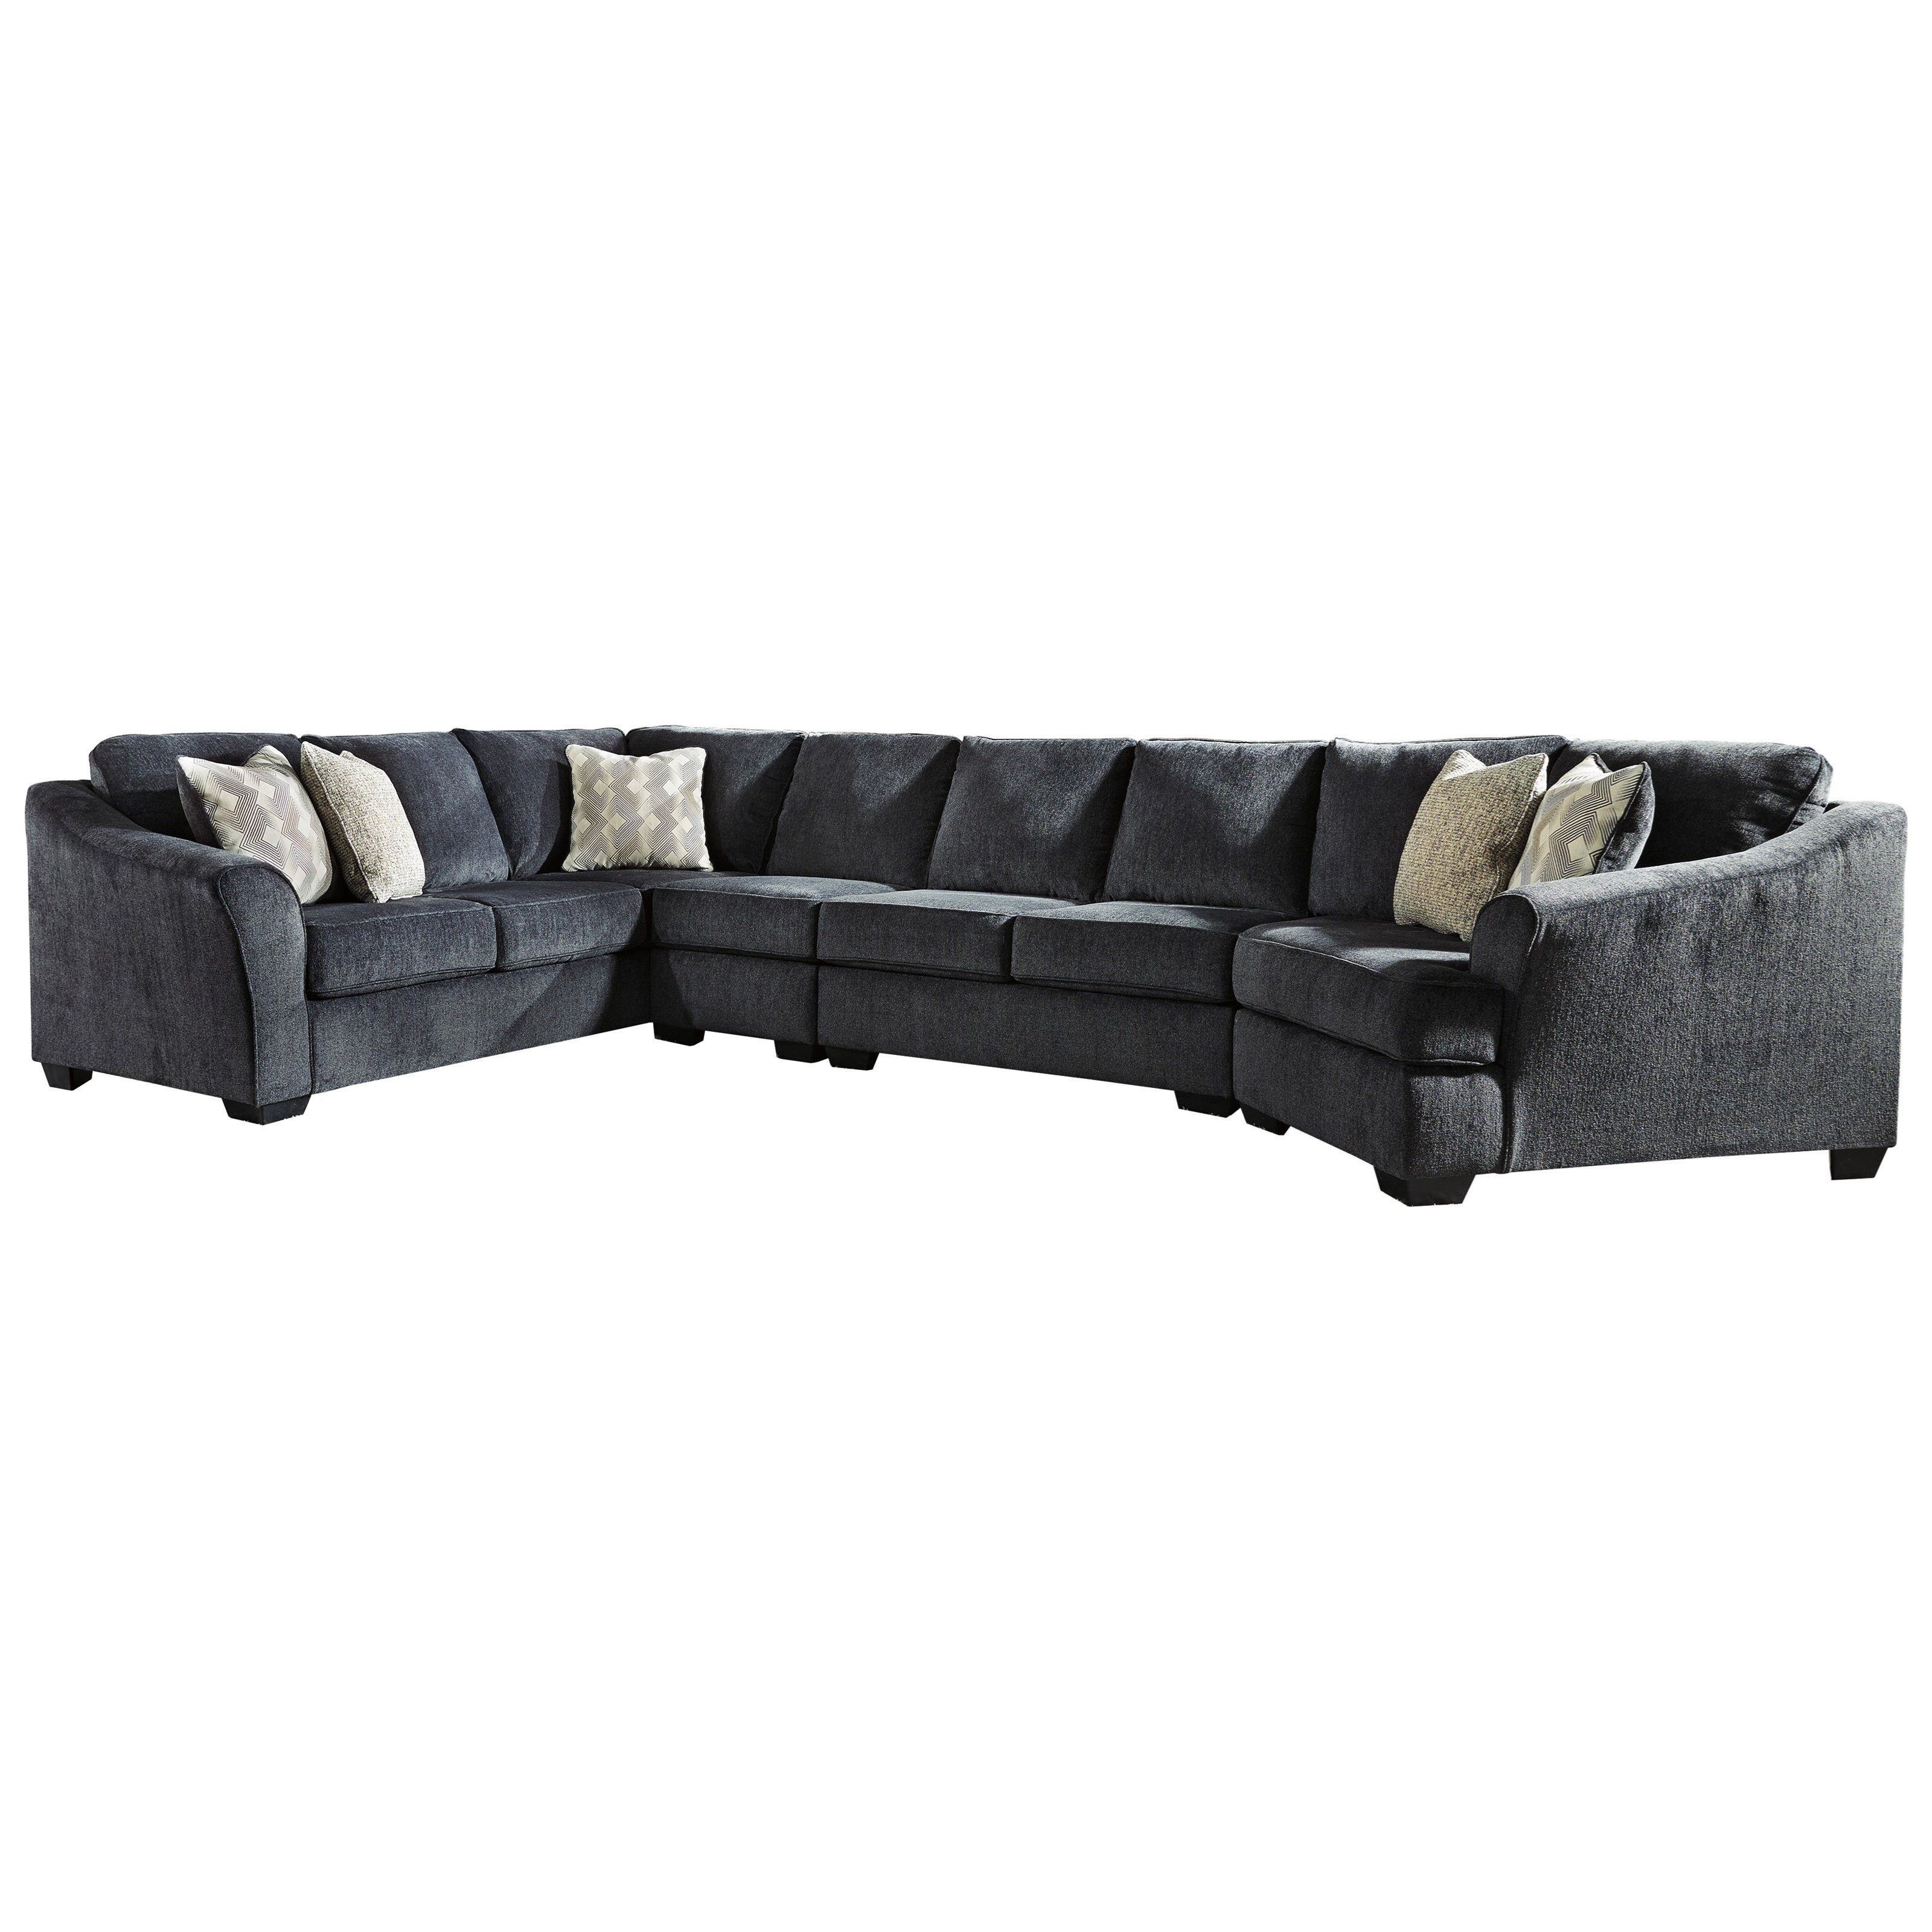 Eltmann 4-Piece Sectional with Right Cuddler by Signature Design by Ashley at Zak's Warehouse Clearance Center